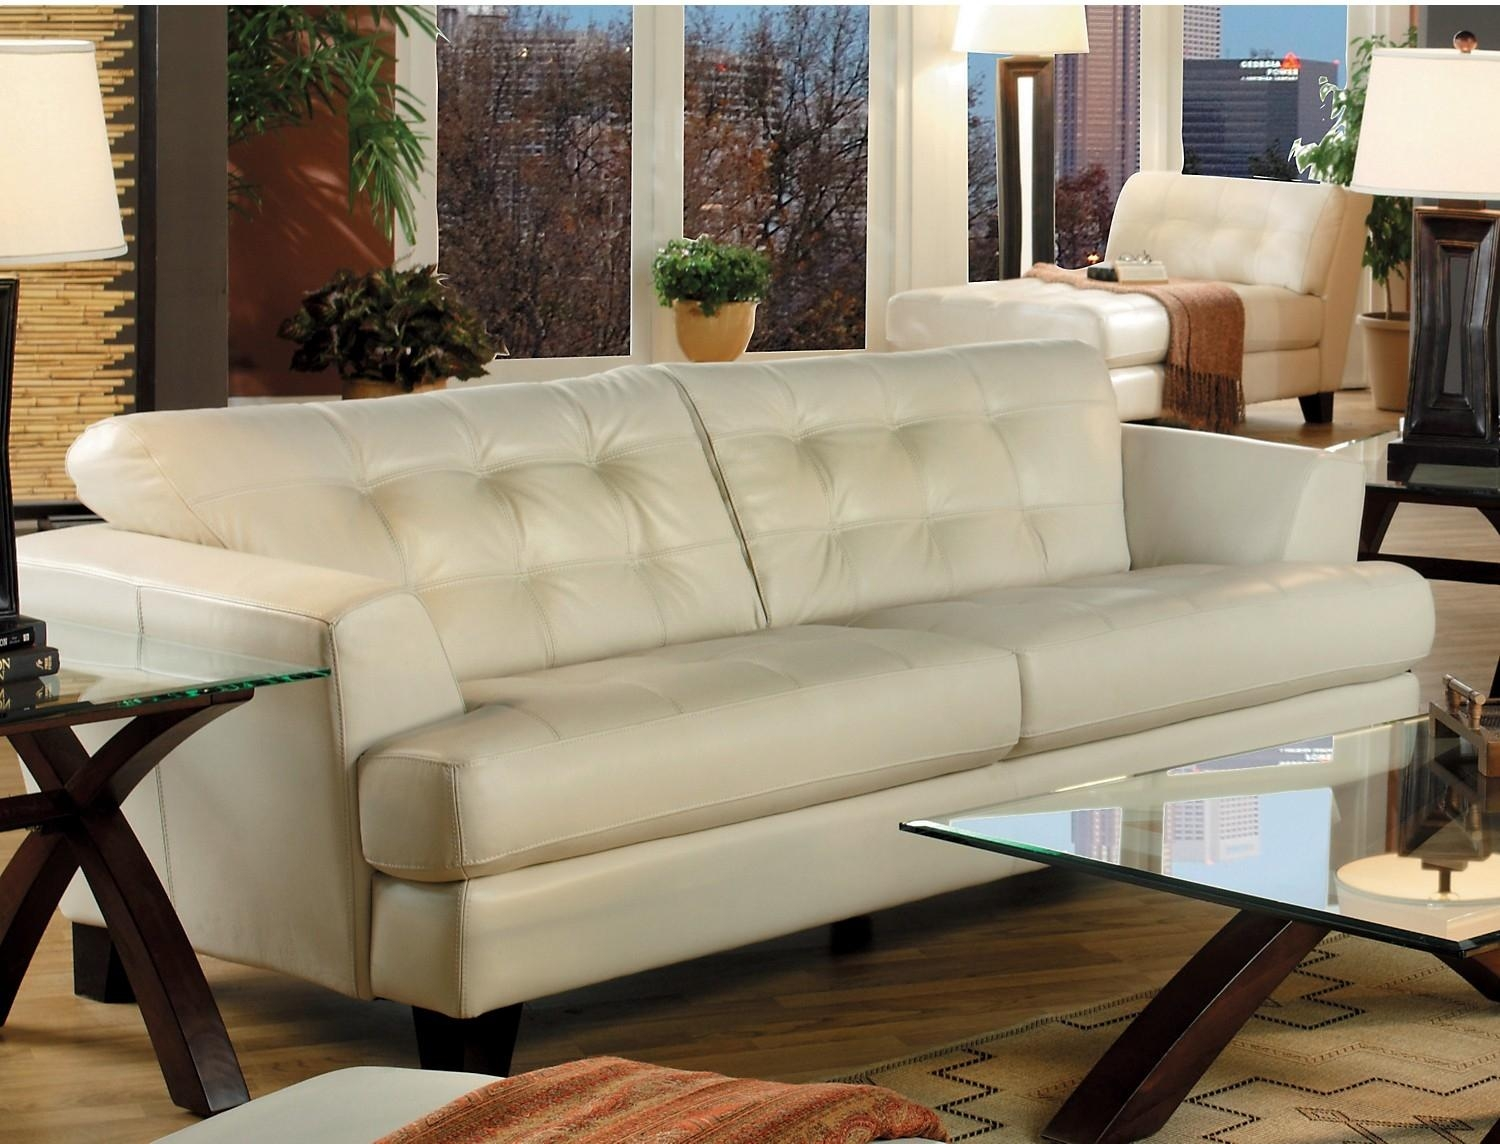 20+ Choices of Cindy Crawford Sofas | Sofa Ideas